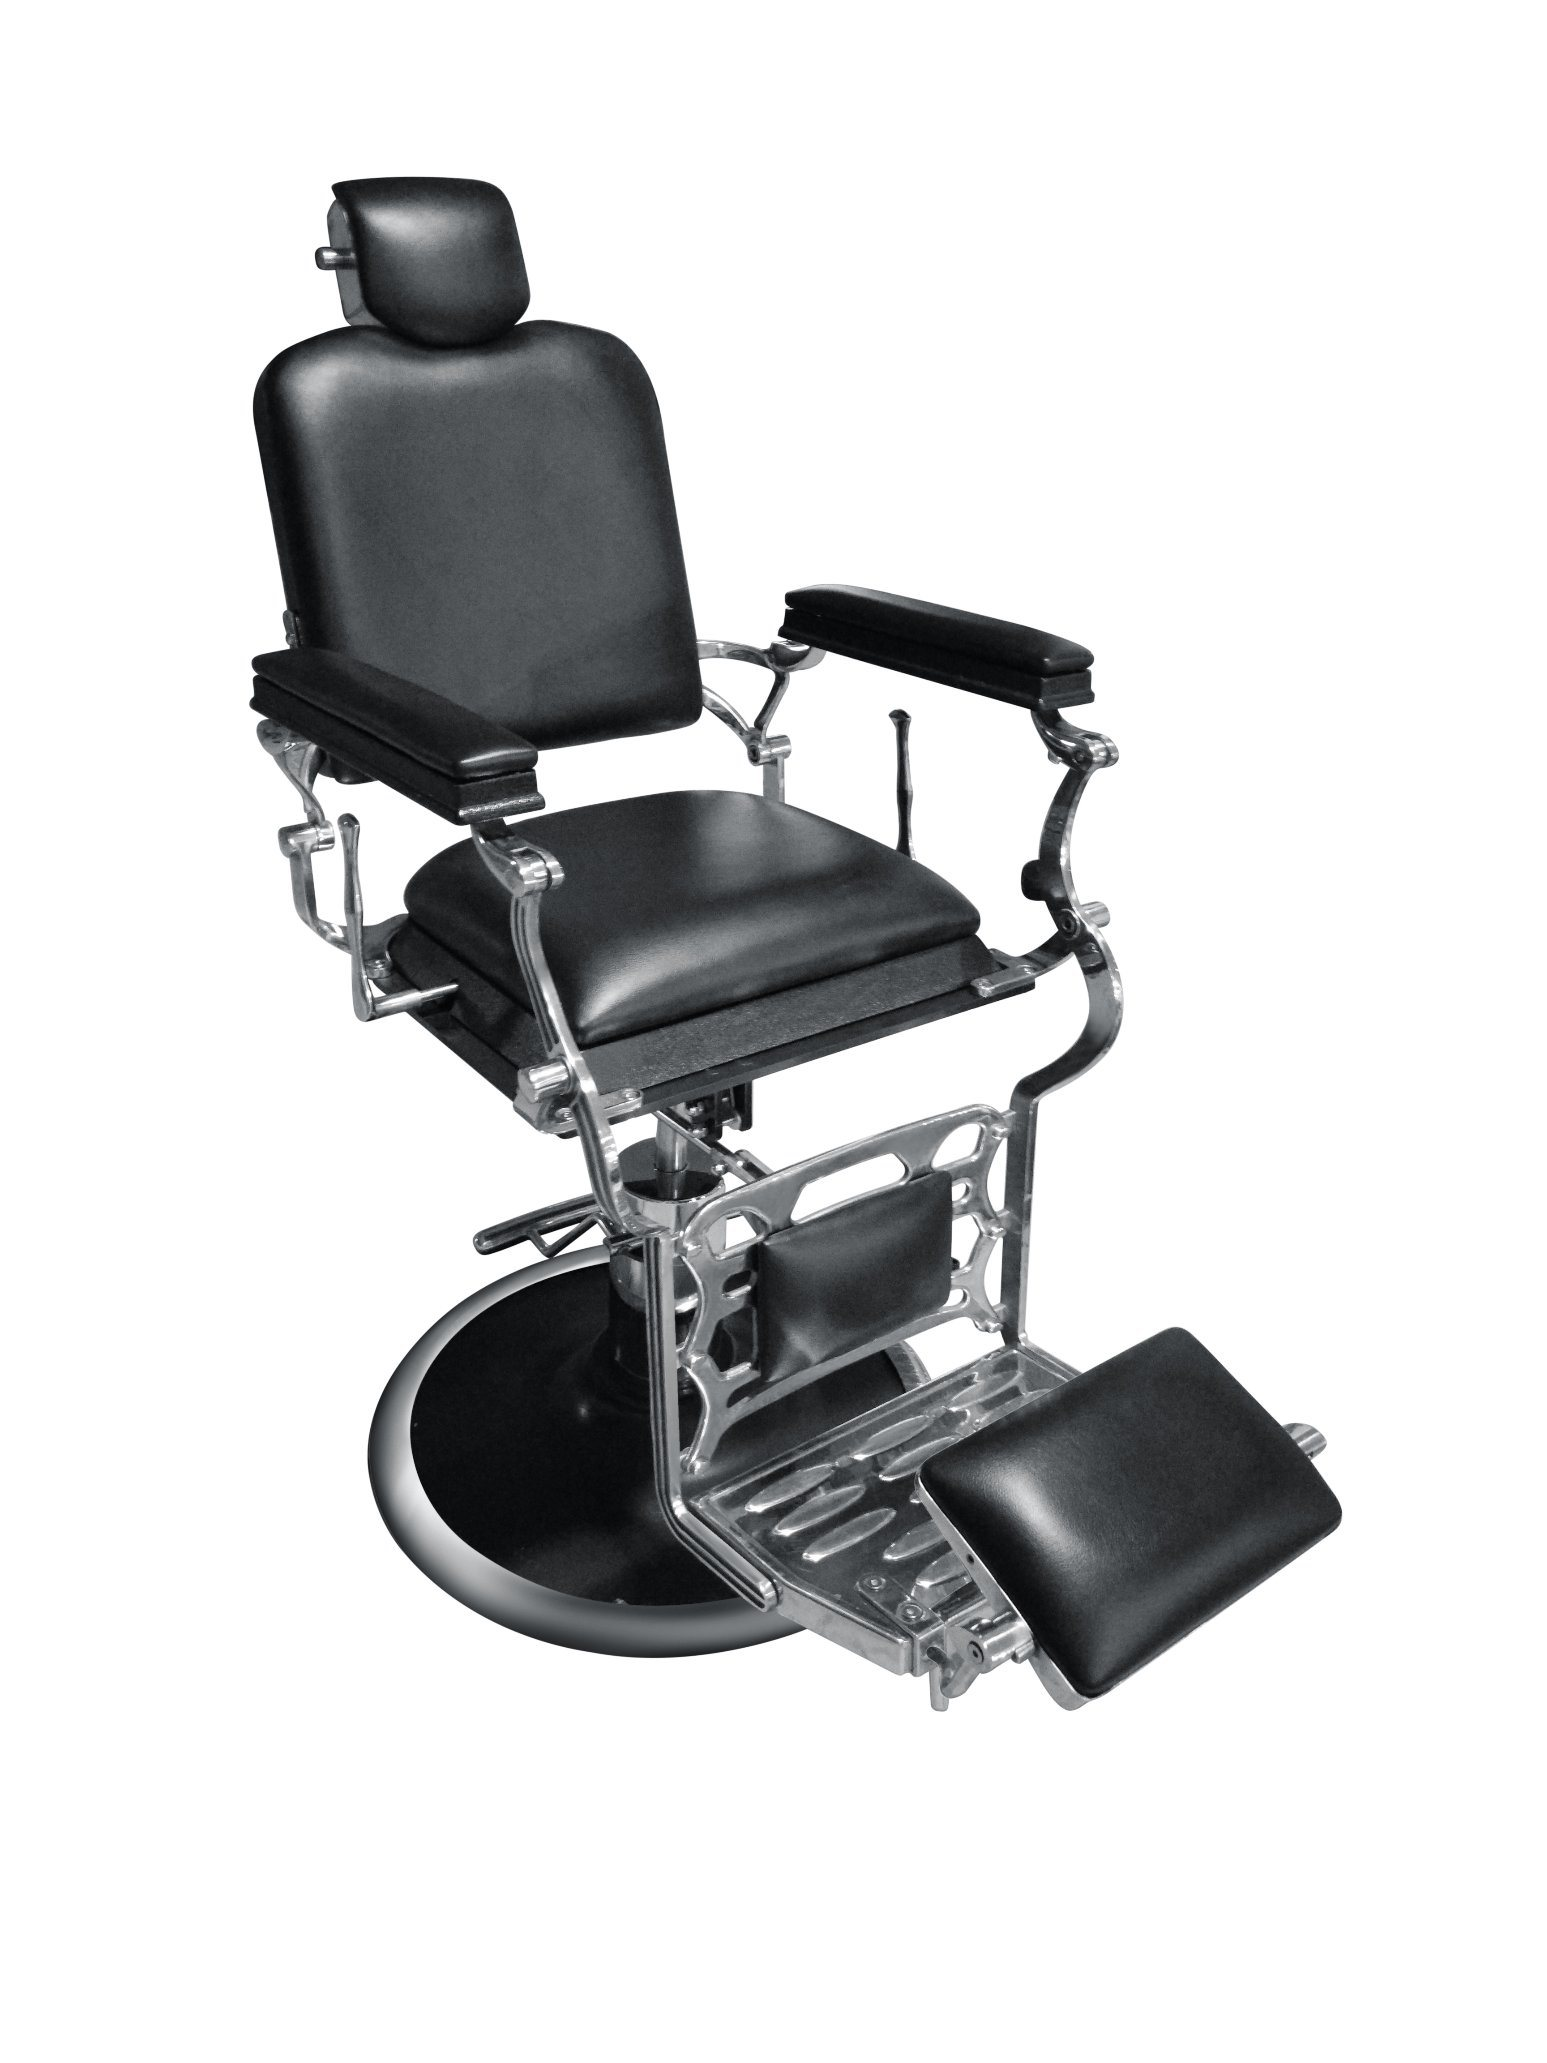 China Barber Stations Barber Chair Barber Shop Unique Shapes Chair